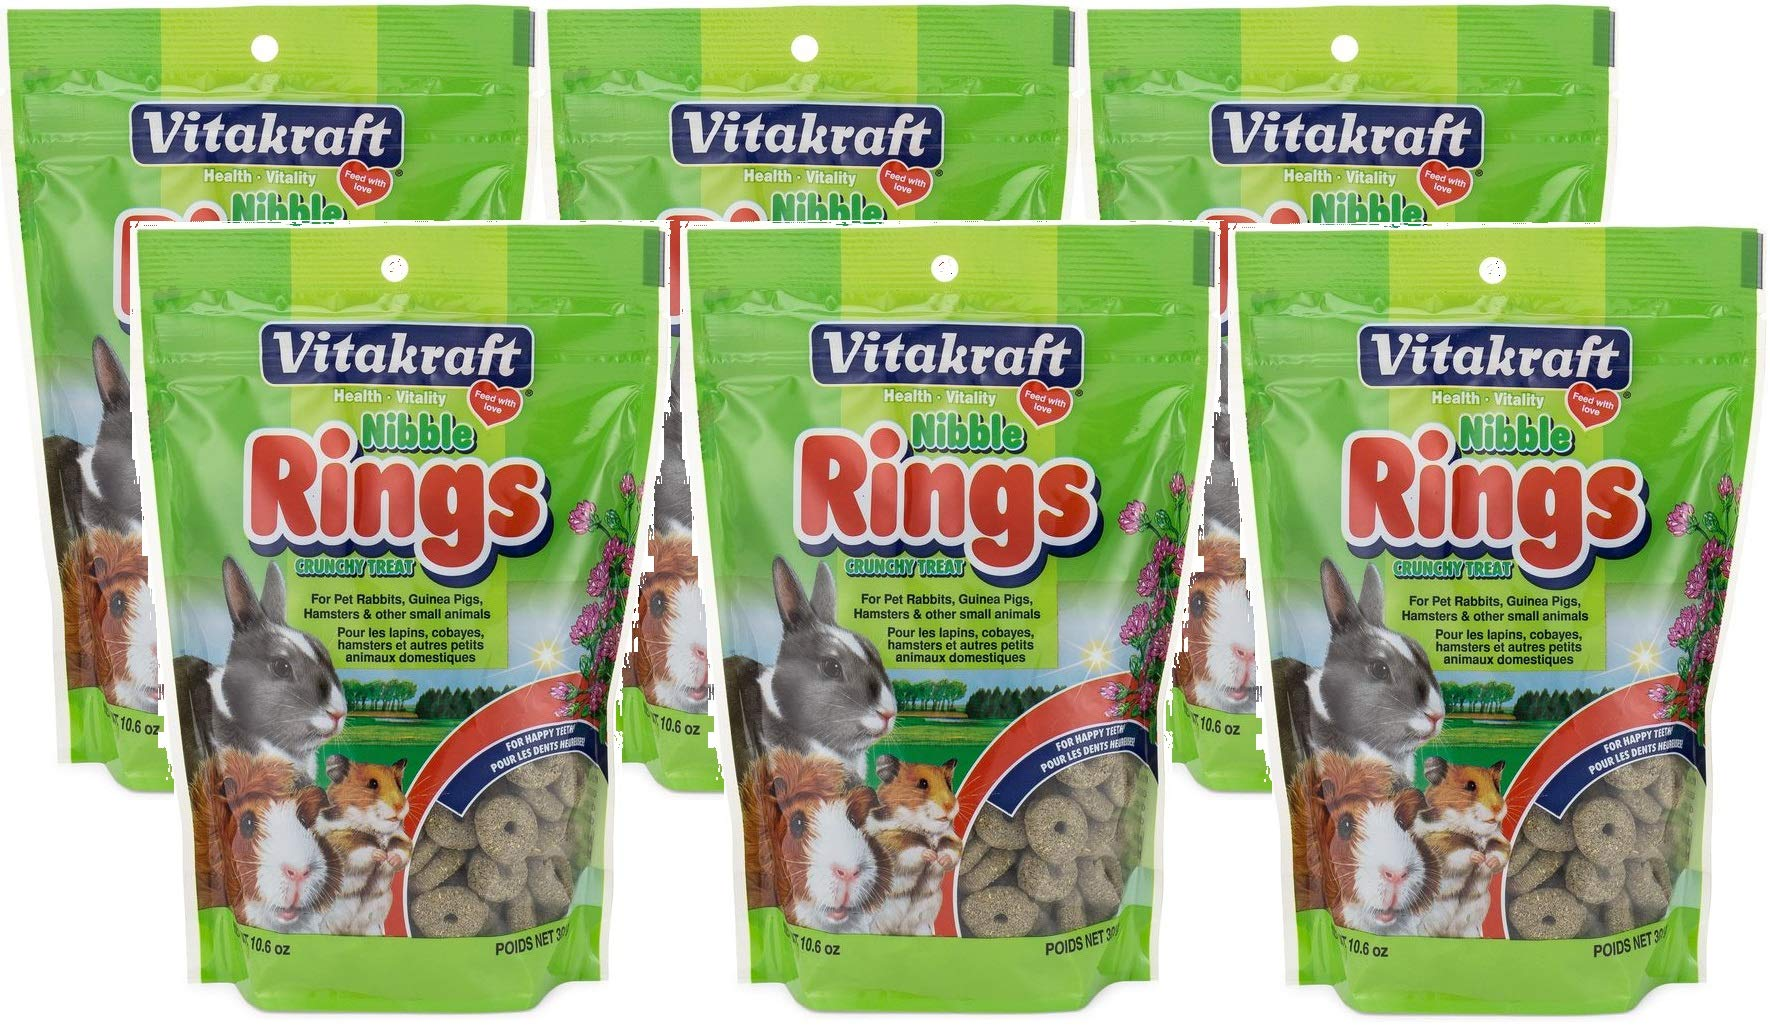 VitaKraft Small Animal Nibble Rings Crunchy Treat - 6 PACK by Vitakraft